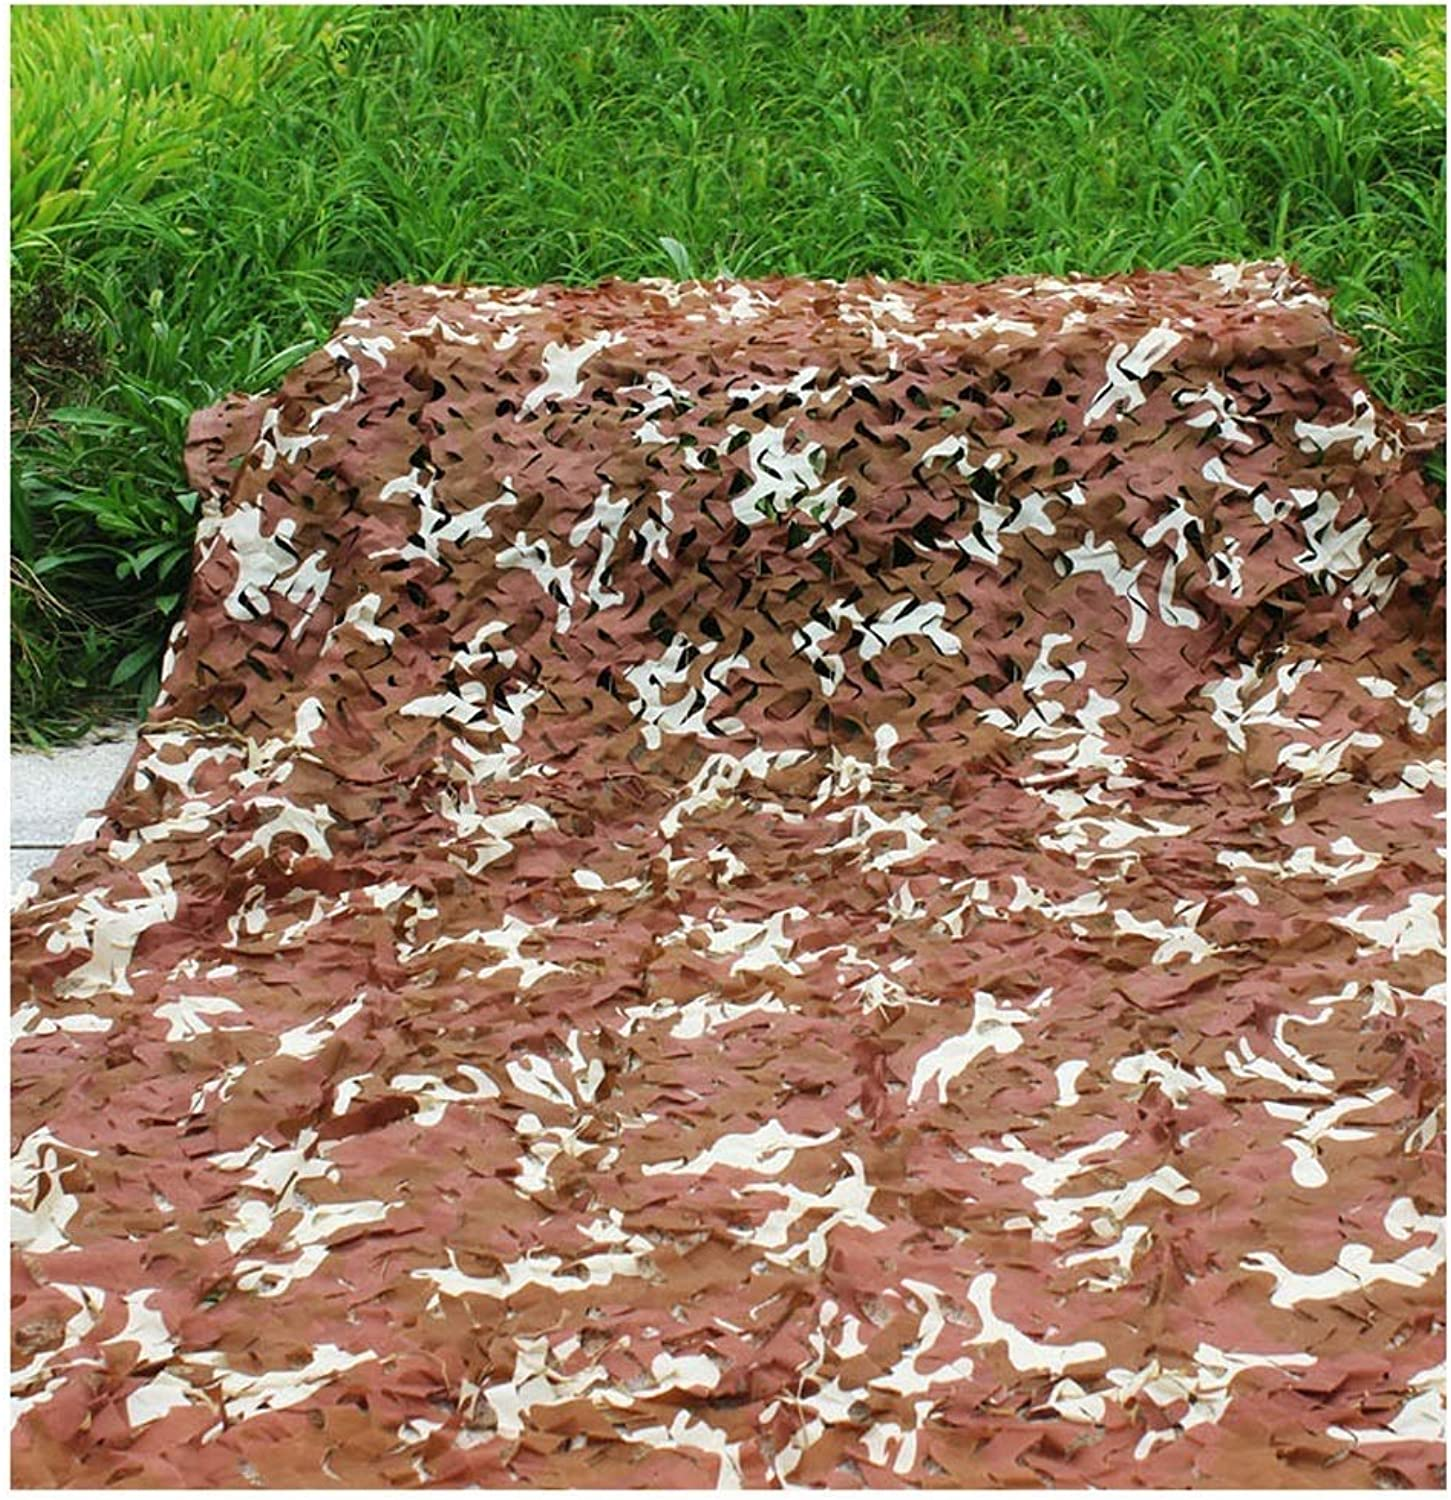 Camouflage Net Shade Net Hidden Net Predection Net CS Game Shooting Decoration Net Outdoor Tent Balcony Jungle Flower Plant Brown Camouflage MultiSize Optional (Size   6  6m)